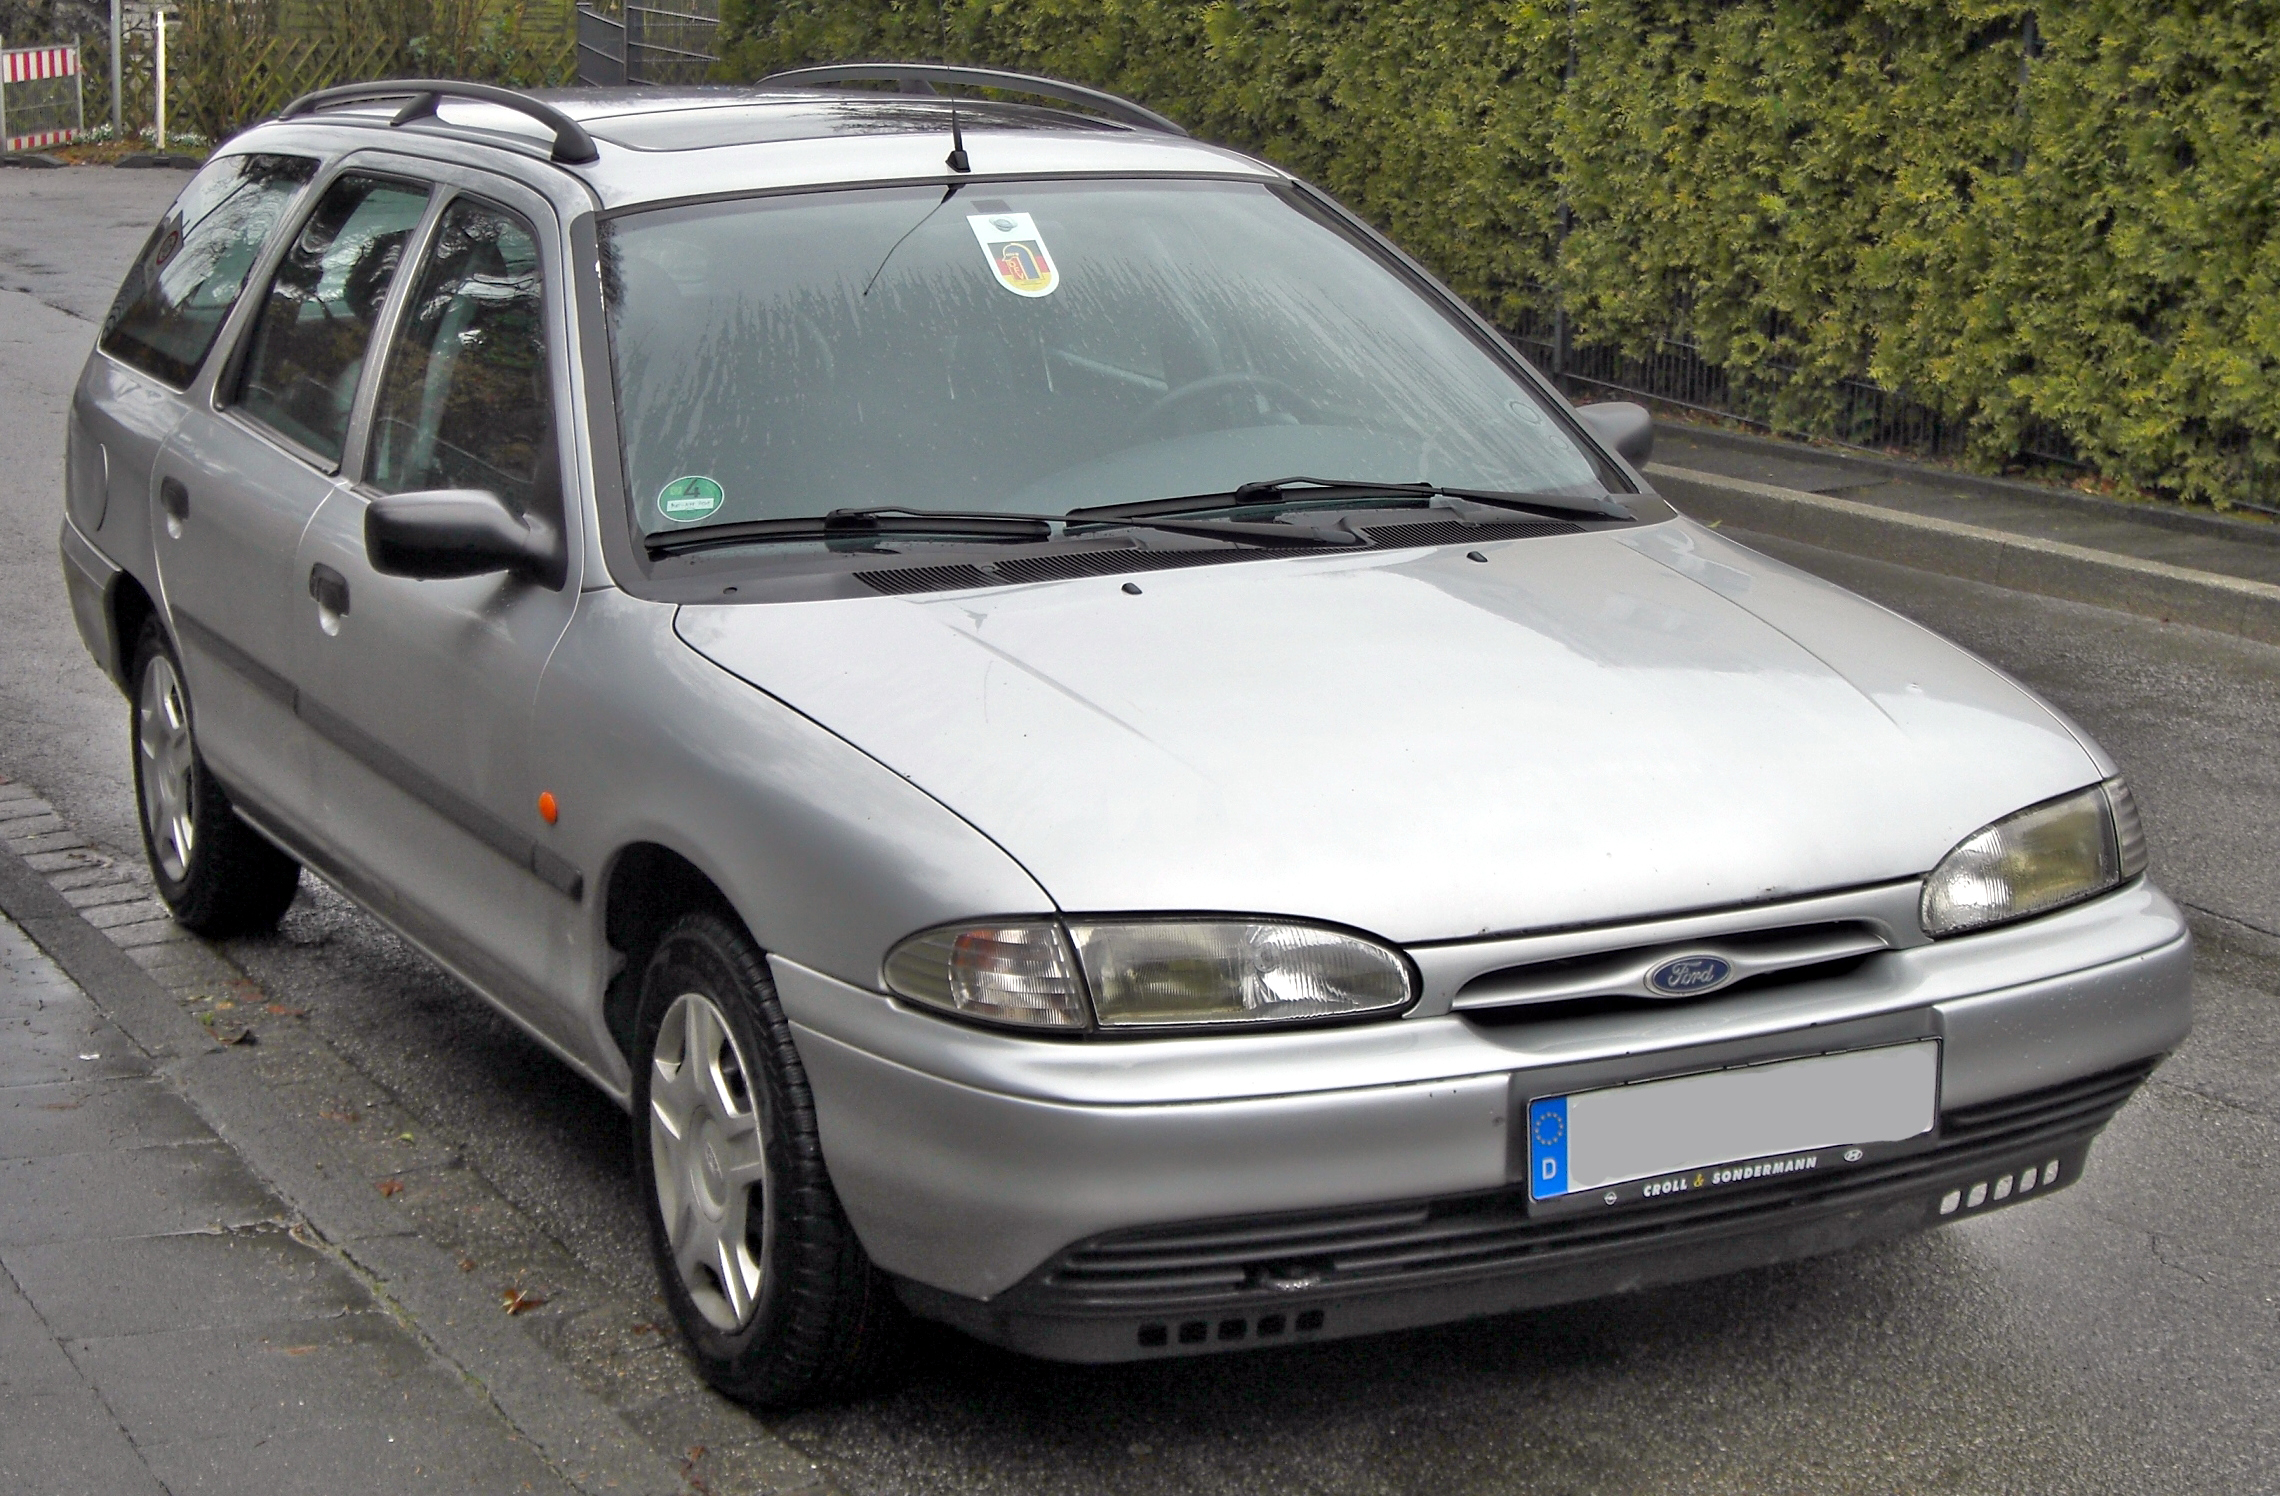 Ford Mondeo (first generation) - Wikipedia